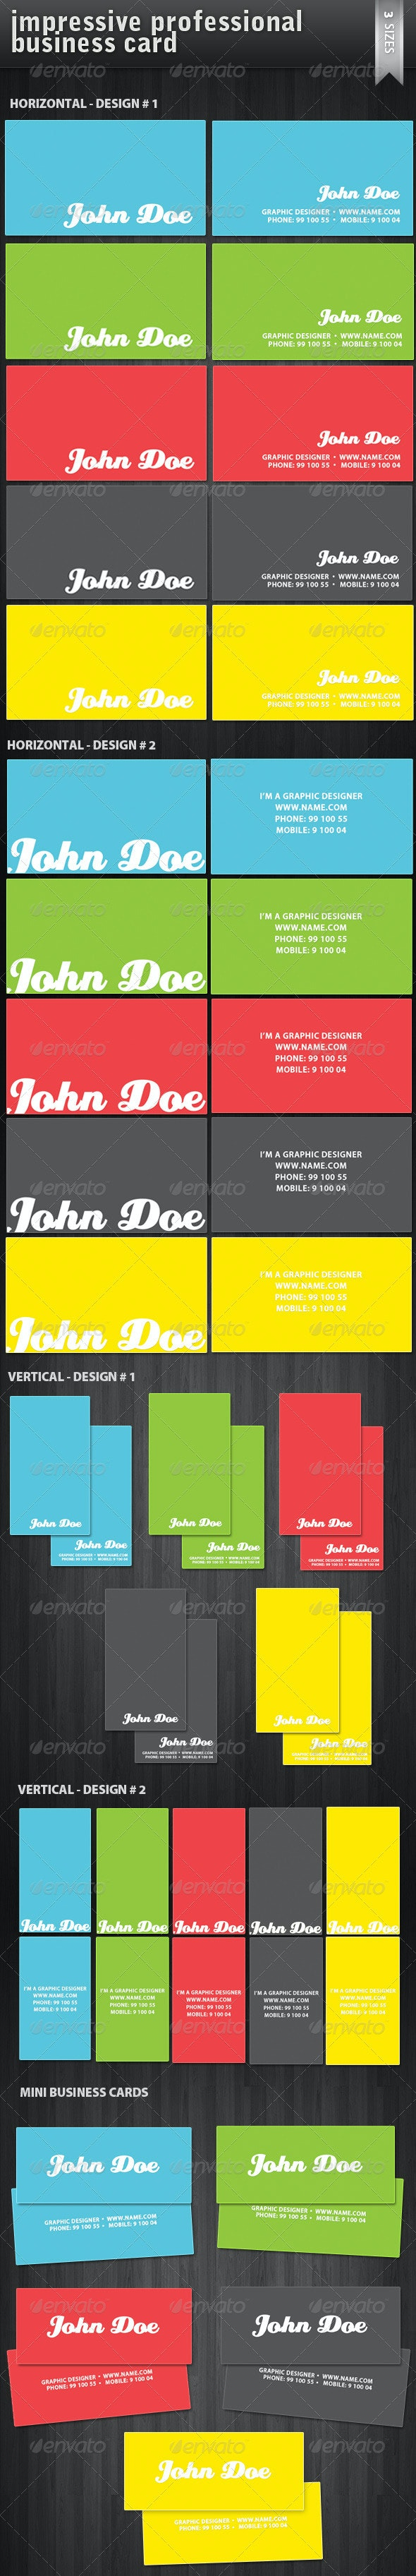 Business Cards x 3 - horizontal, vertical & mini ! - Corporate Business Cards